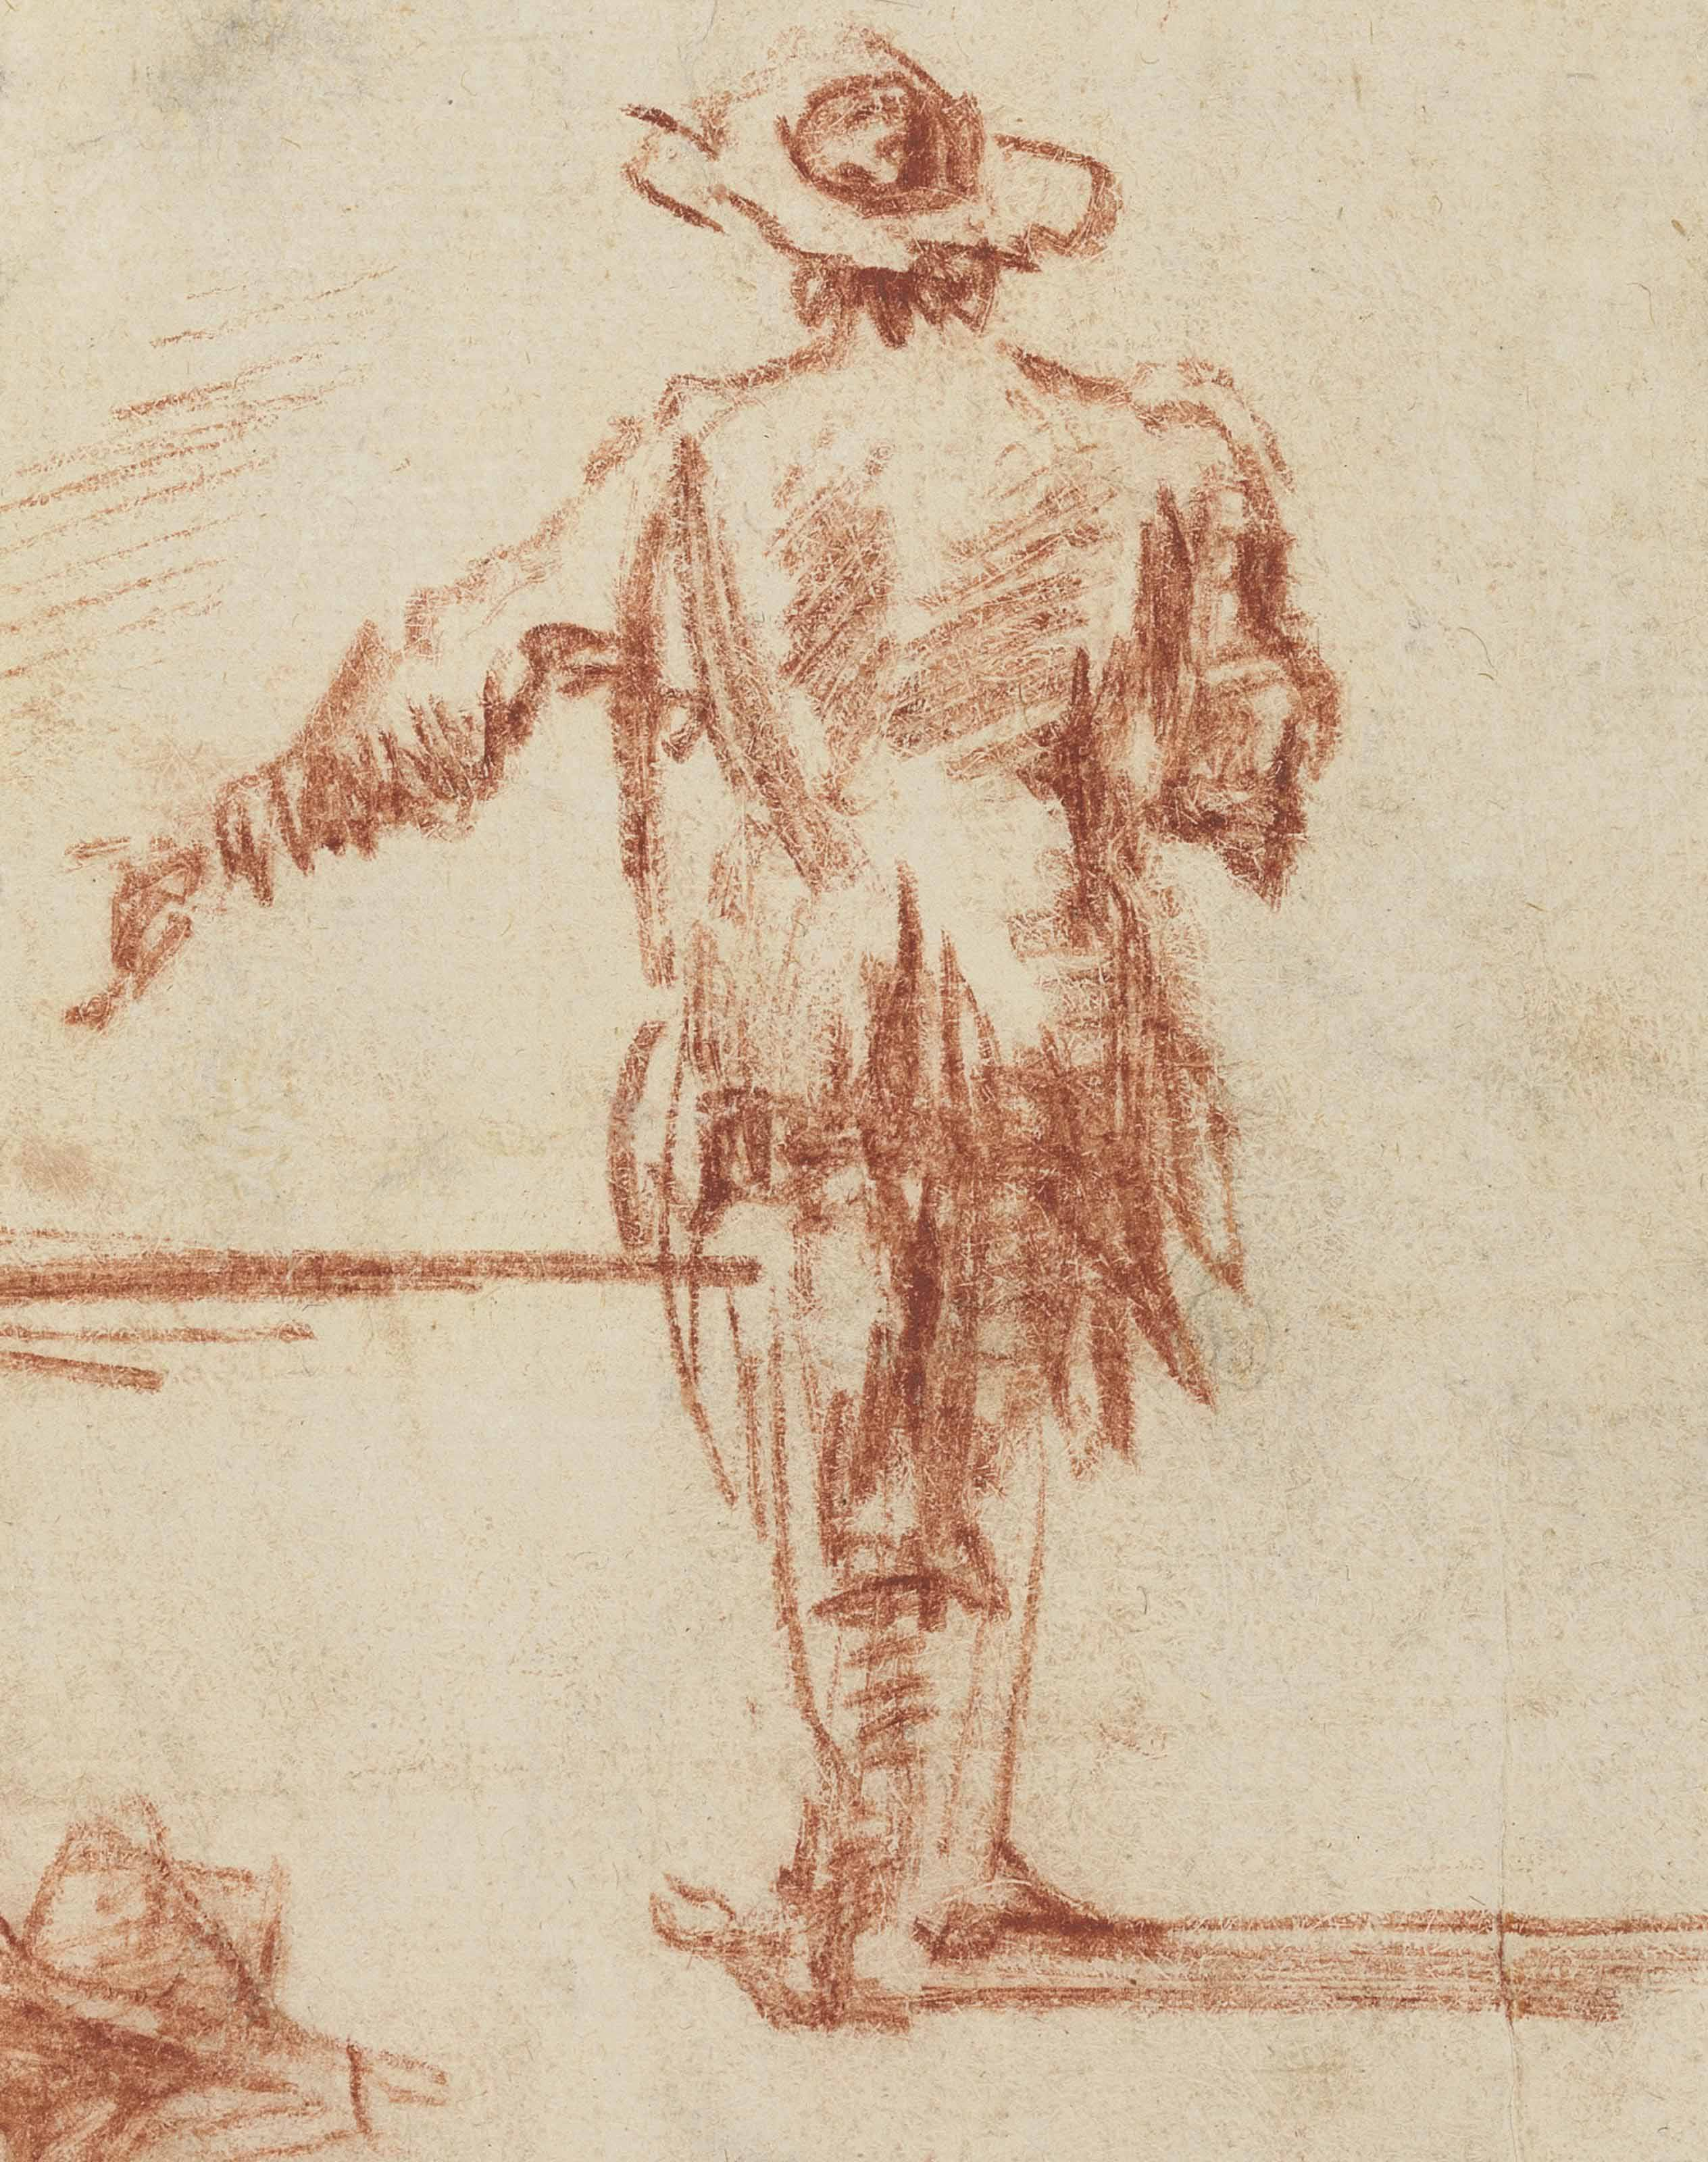 A standing man wearing a hat, seen from behind